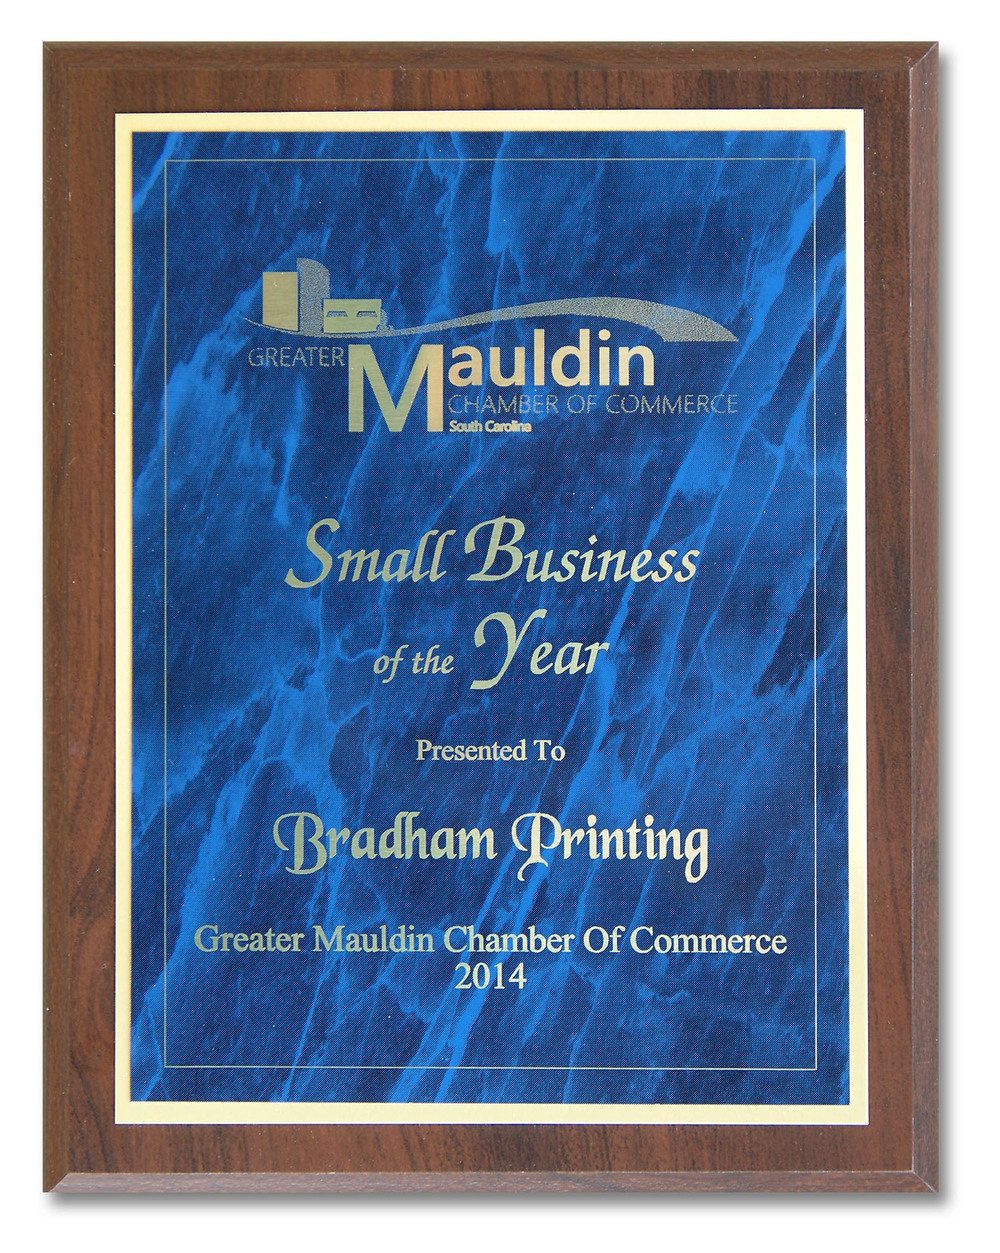 Bradham Printing & Signs received the Greater Mauldin Chamber of Commerce Small Business of the Year Award for 2014.